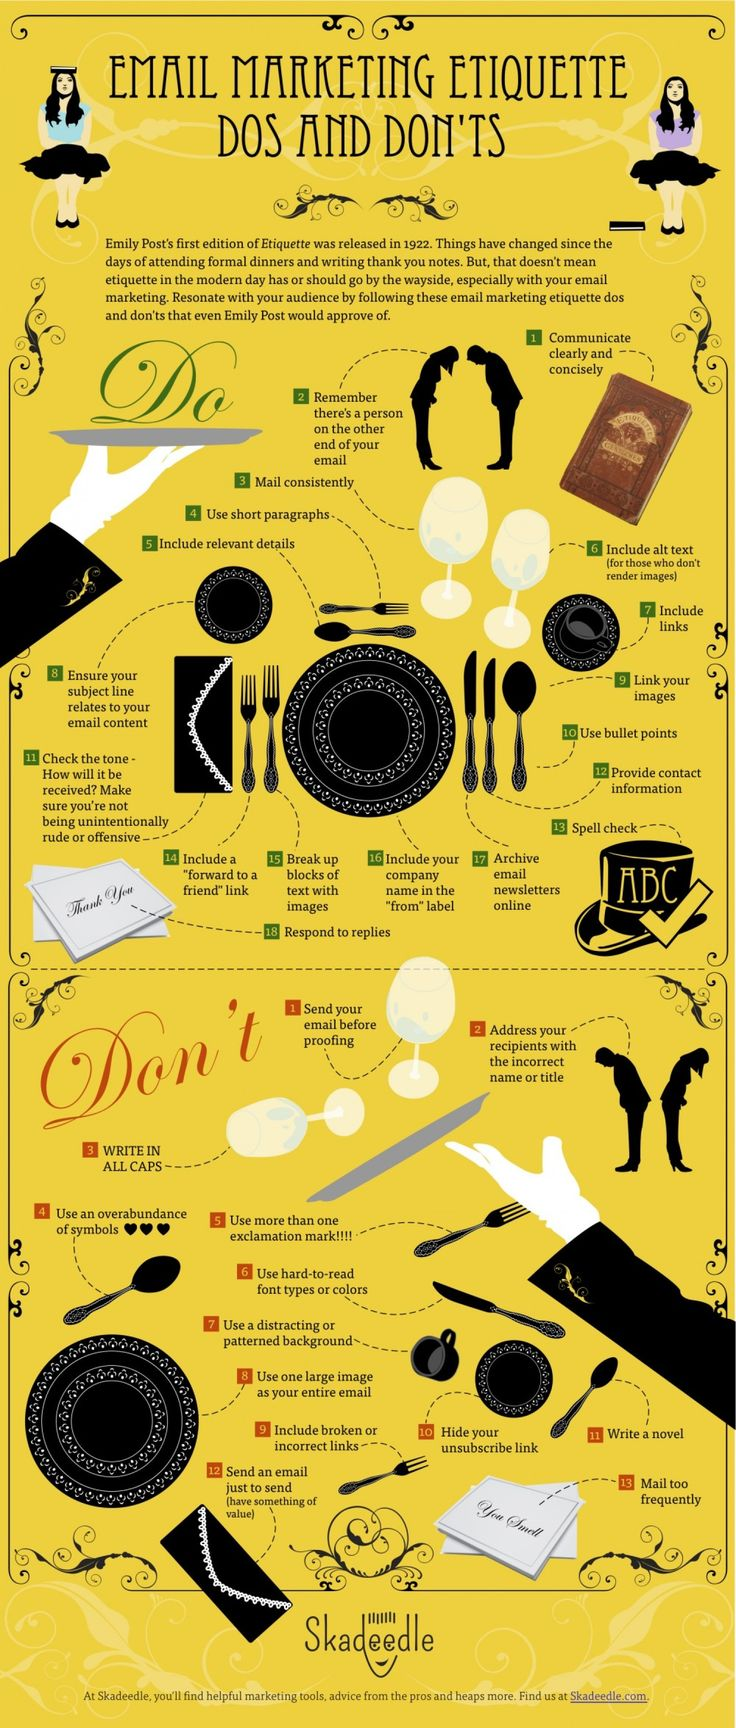 Email Marketing Etiquette Dos and Don'ts Infographic